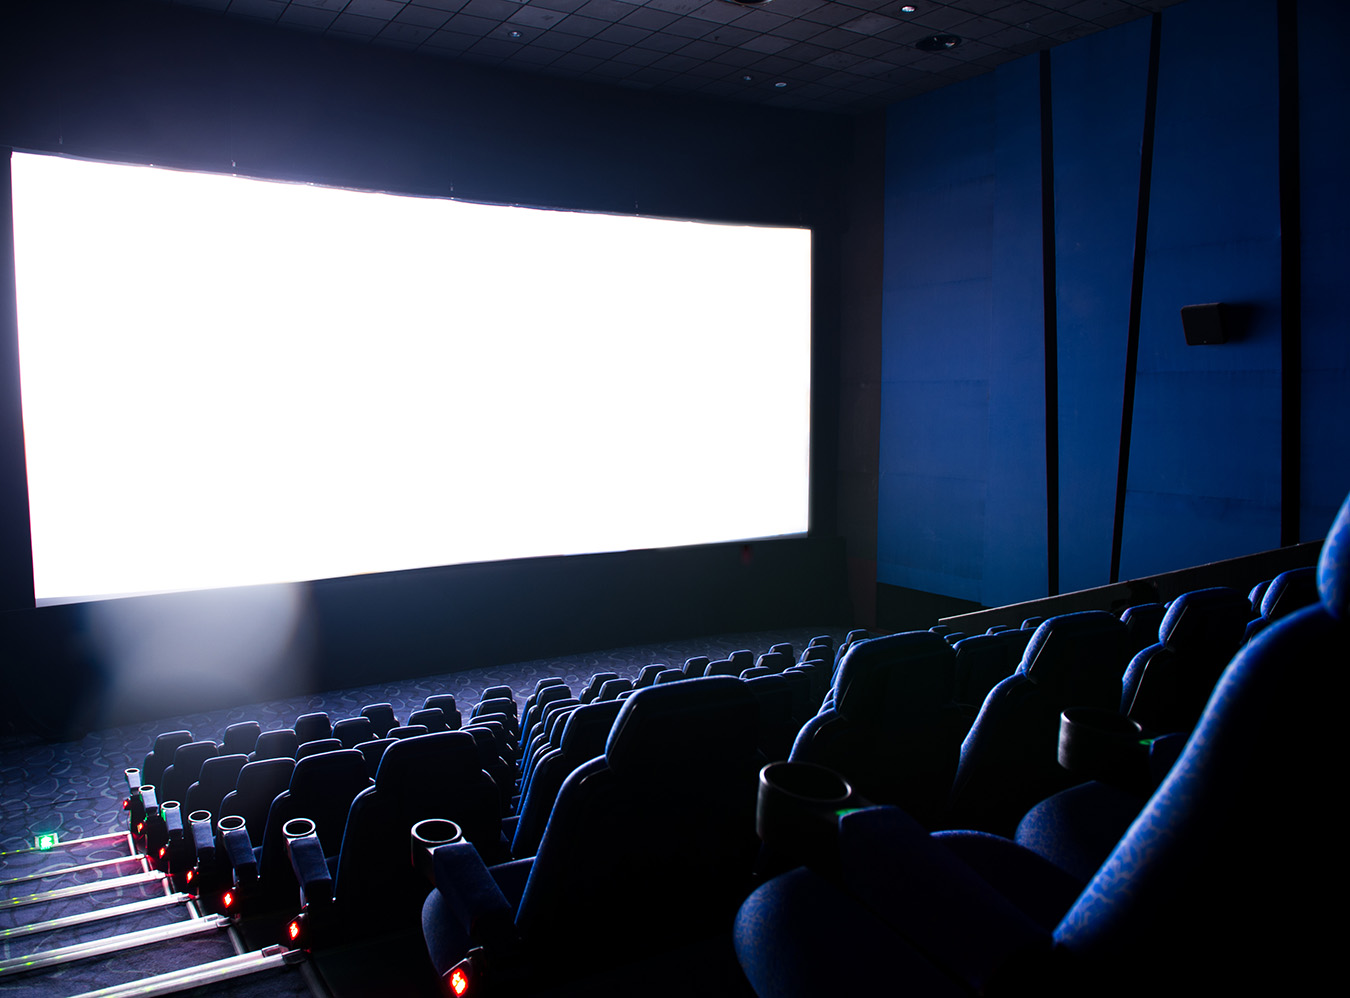 Movie theater - projection screen